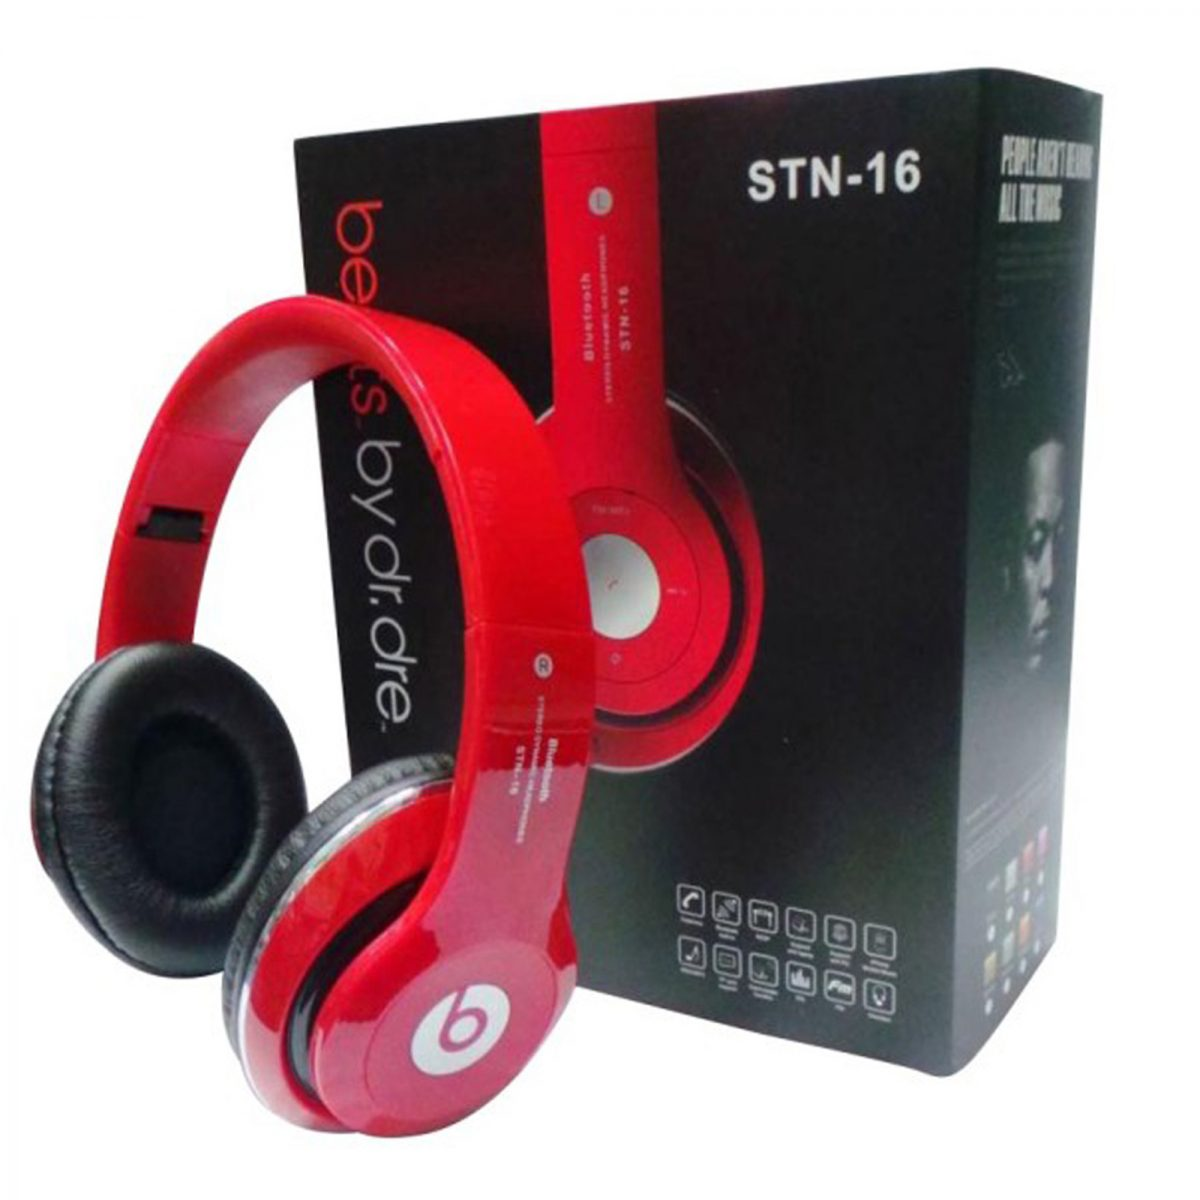 STN 16 Wireless Headphone - Red